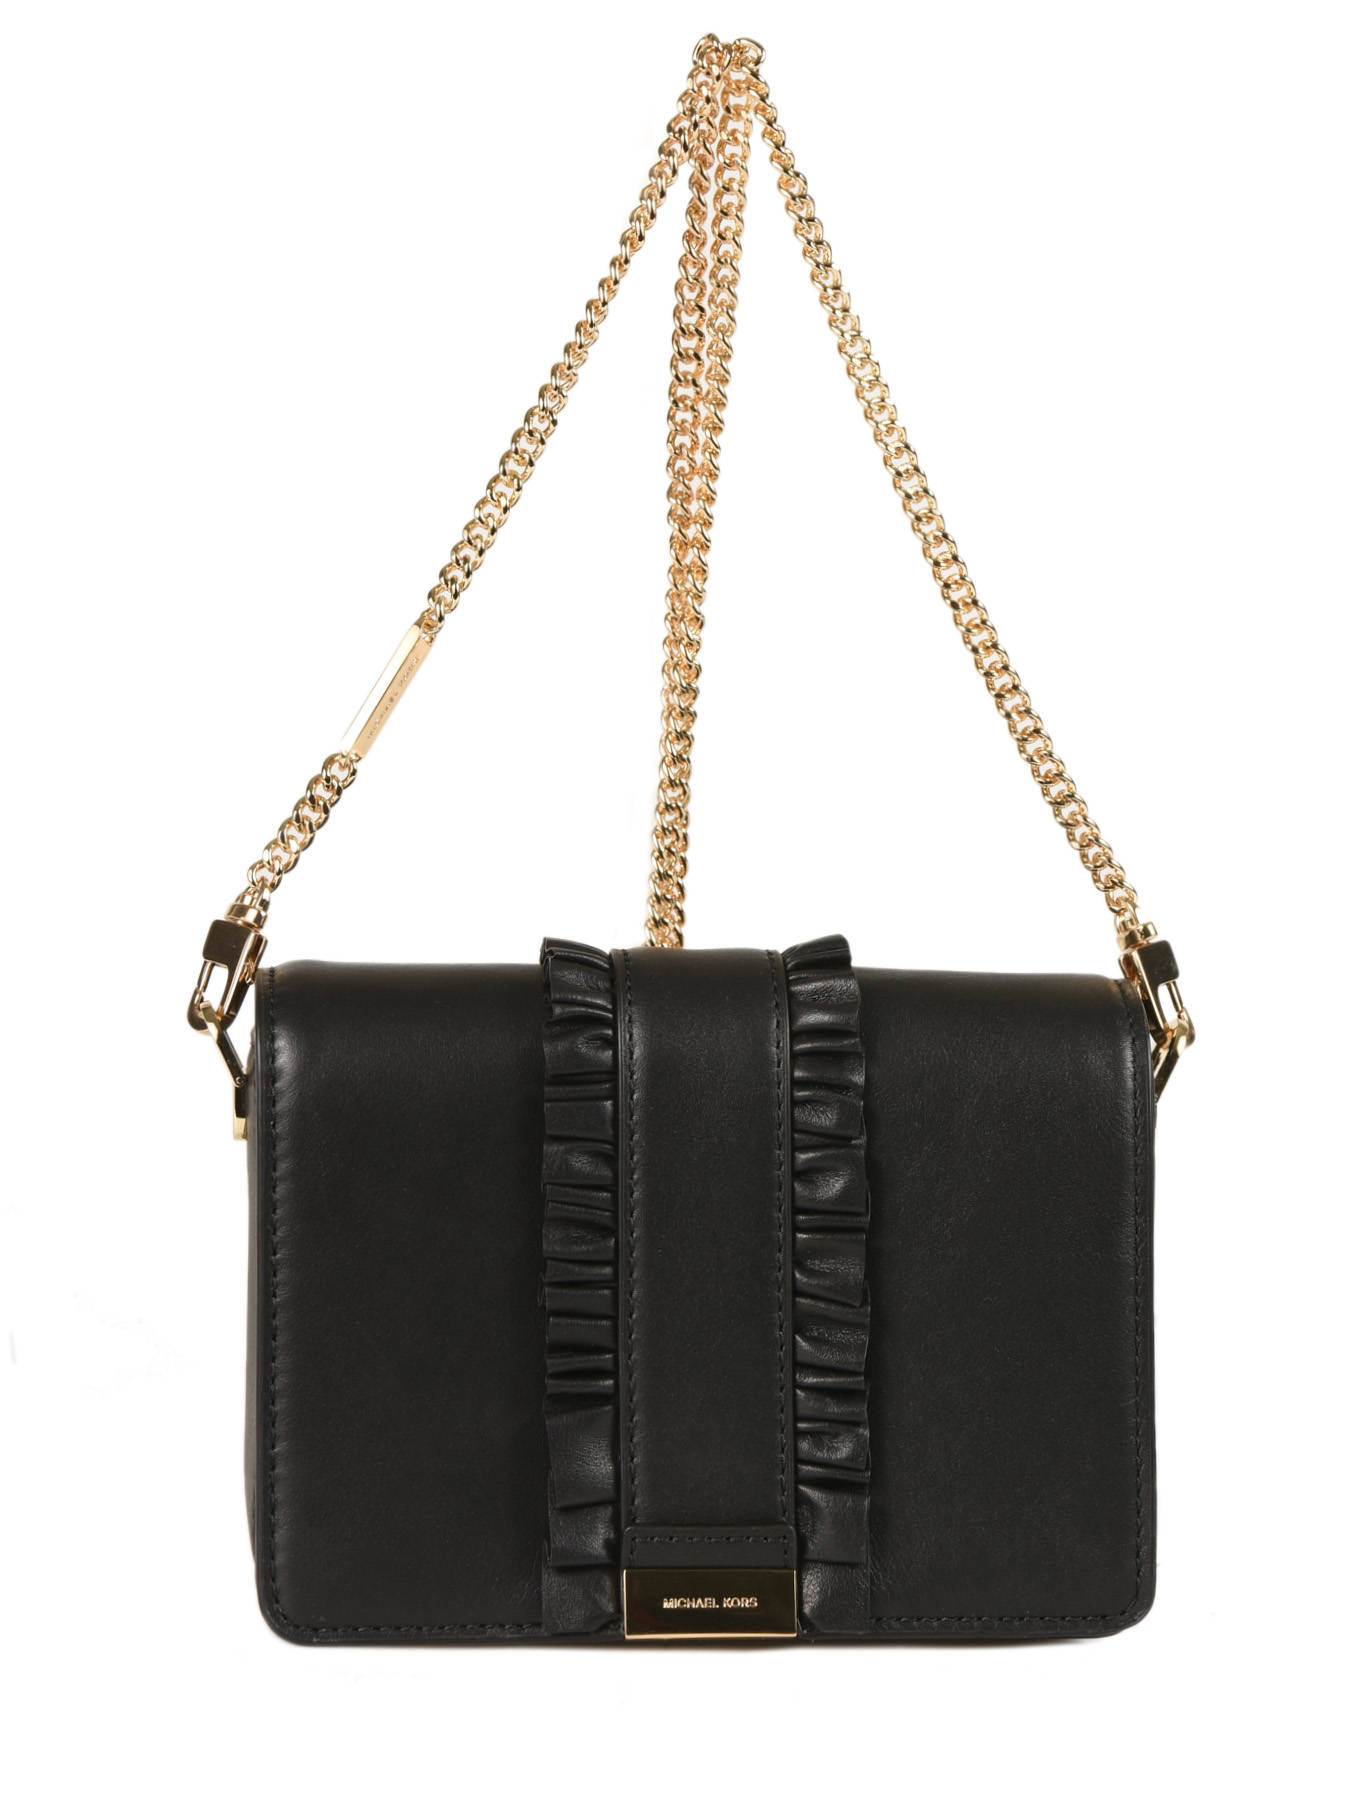 Crossbody Bag Jade Leather Michael Kors Black H7gj4c6l